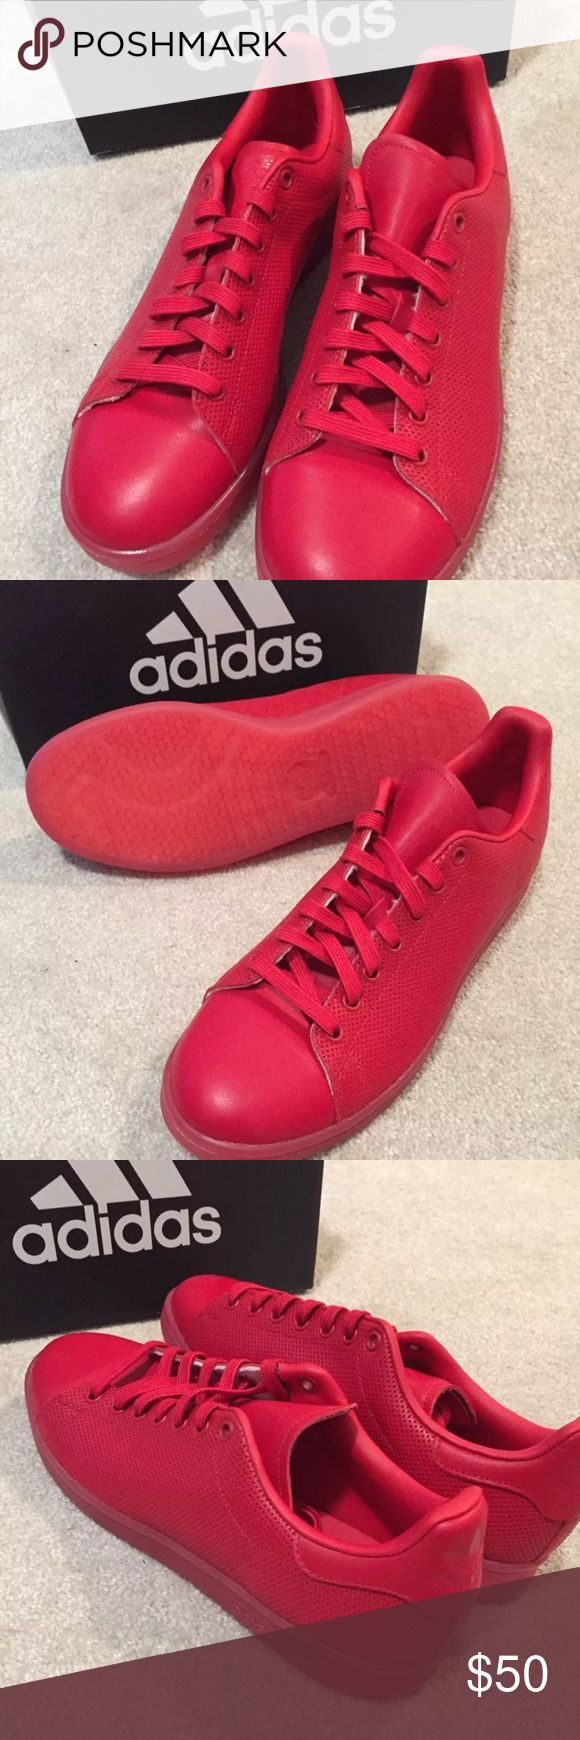 Adidas Stan Smith Adicolor Brand new!!! Adidas Stan Smith Adicolor. SizesBrand new!!! Adidas Stan Smith Adicolor. Size 10  and 11 available. Red /Red color. MSRP$ 85. **Special price today and tomorrow ONLY. Price is firmed!!! adidas Shoes Sneakers